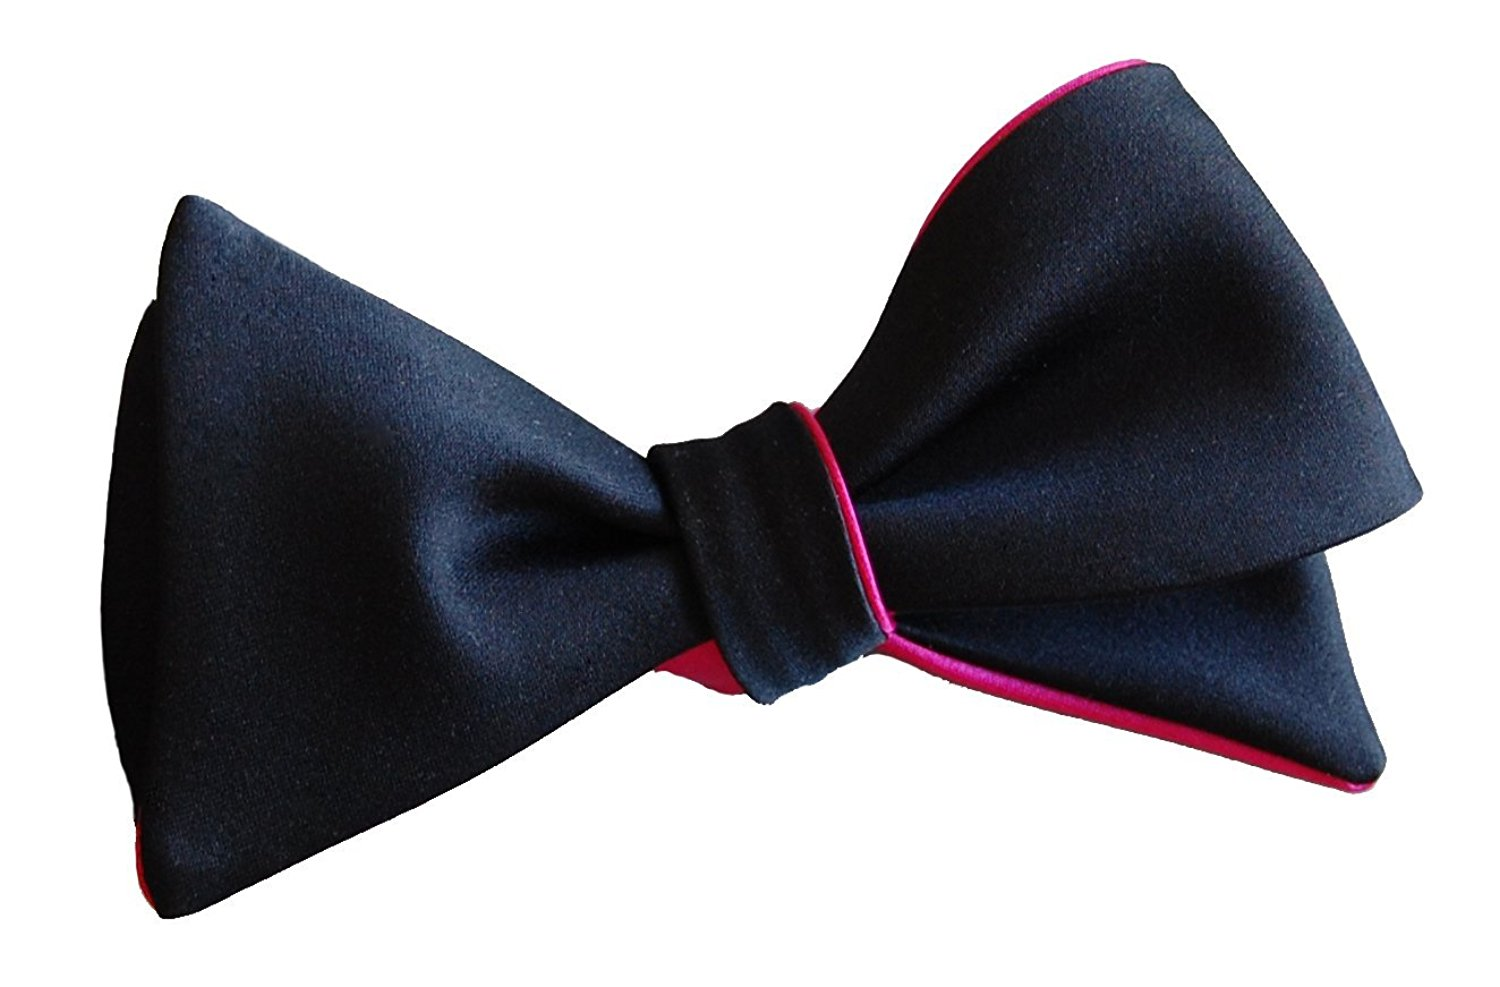 Black and Hot Pink Bow Tie by Knot Theory - tailor handmade - 6 ways to wear - impeccable quality - self-tie butterfly - wedding grooms groomsmen - grad prom events